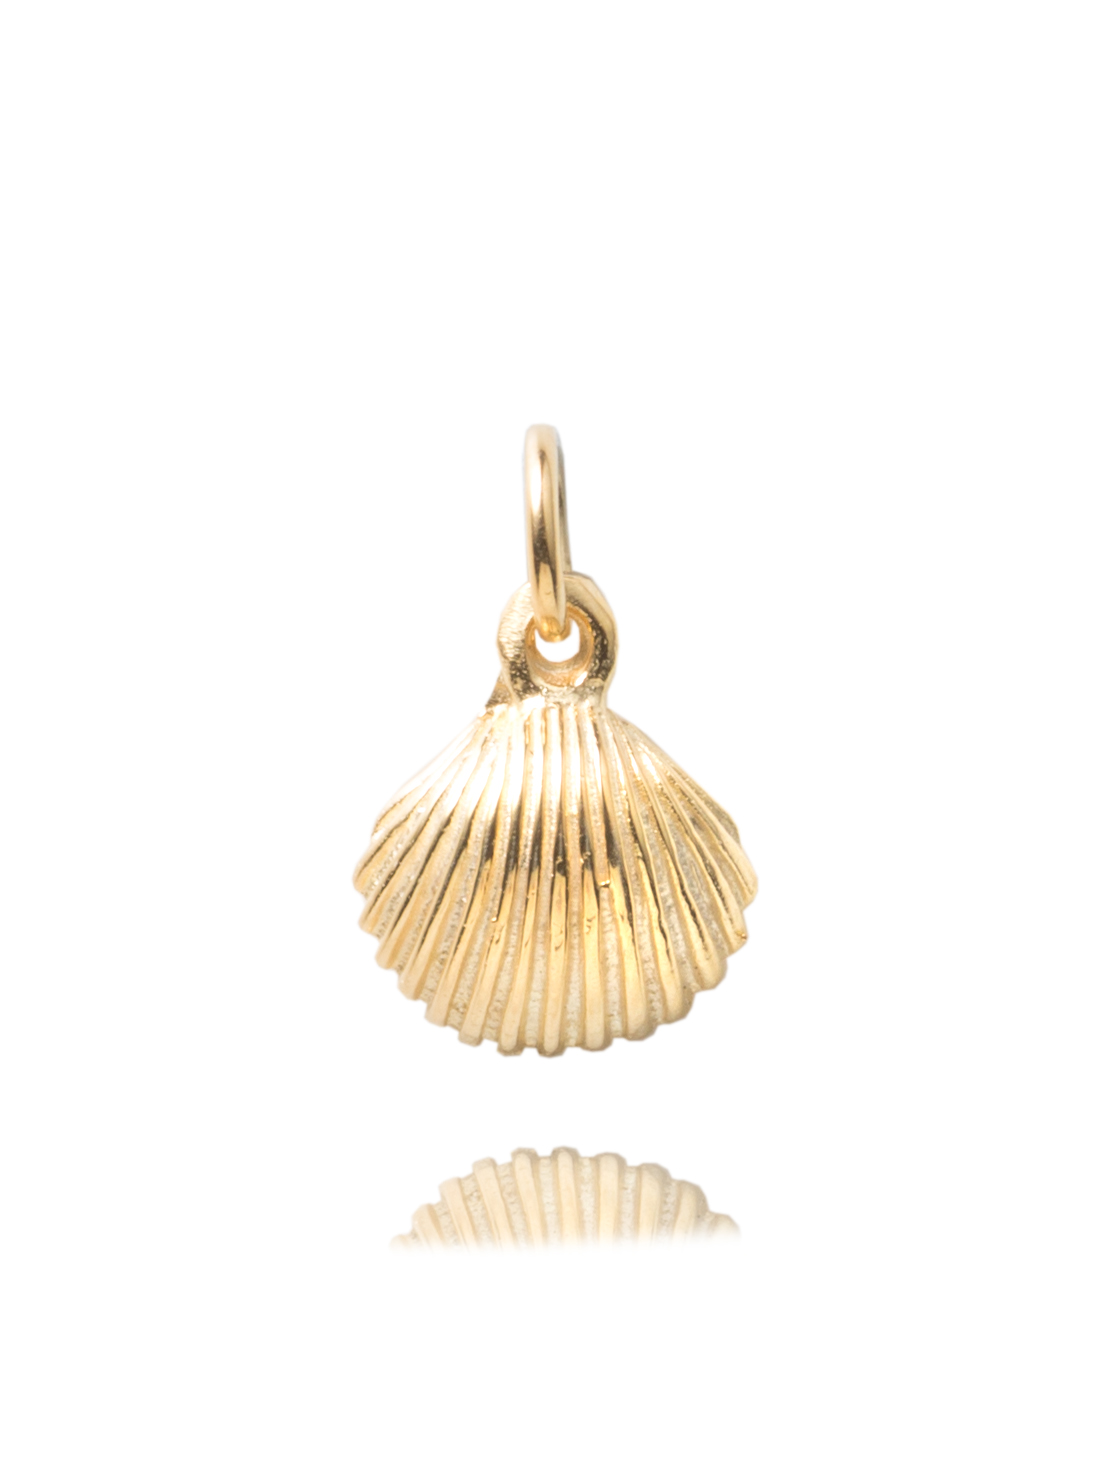 Gold Scallop Shell Charm